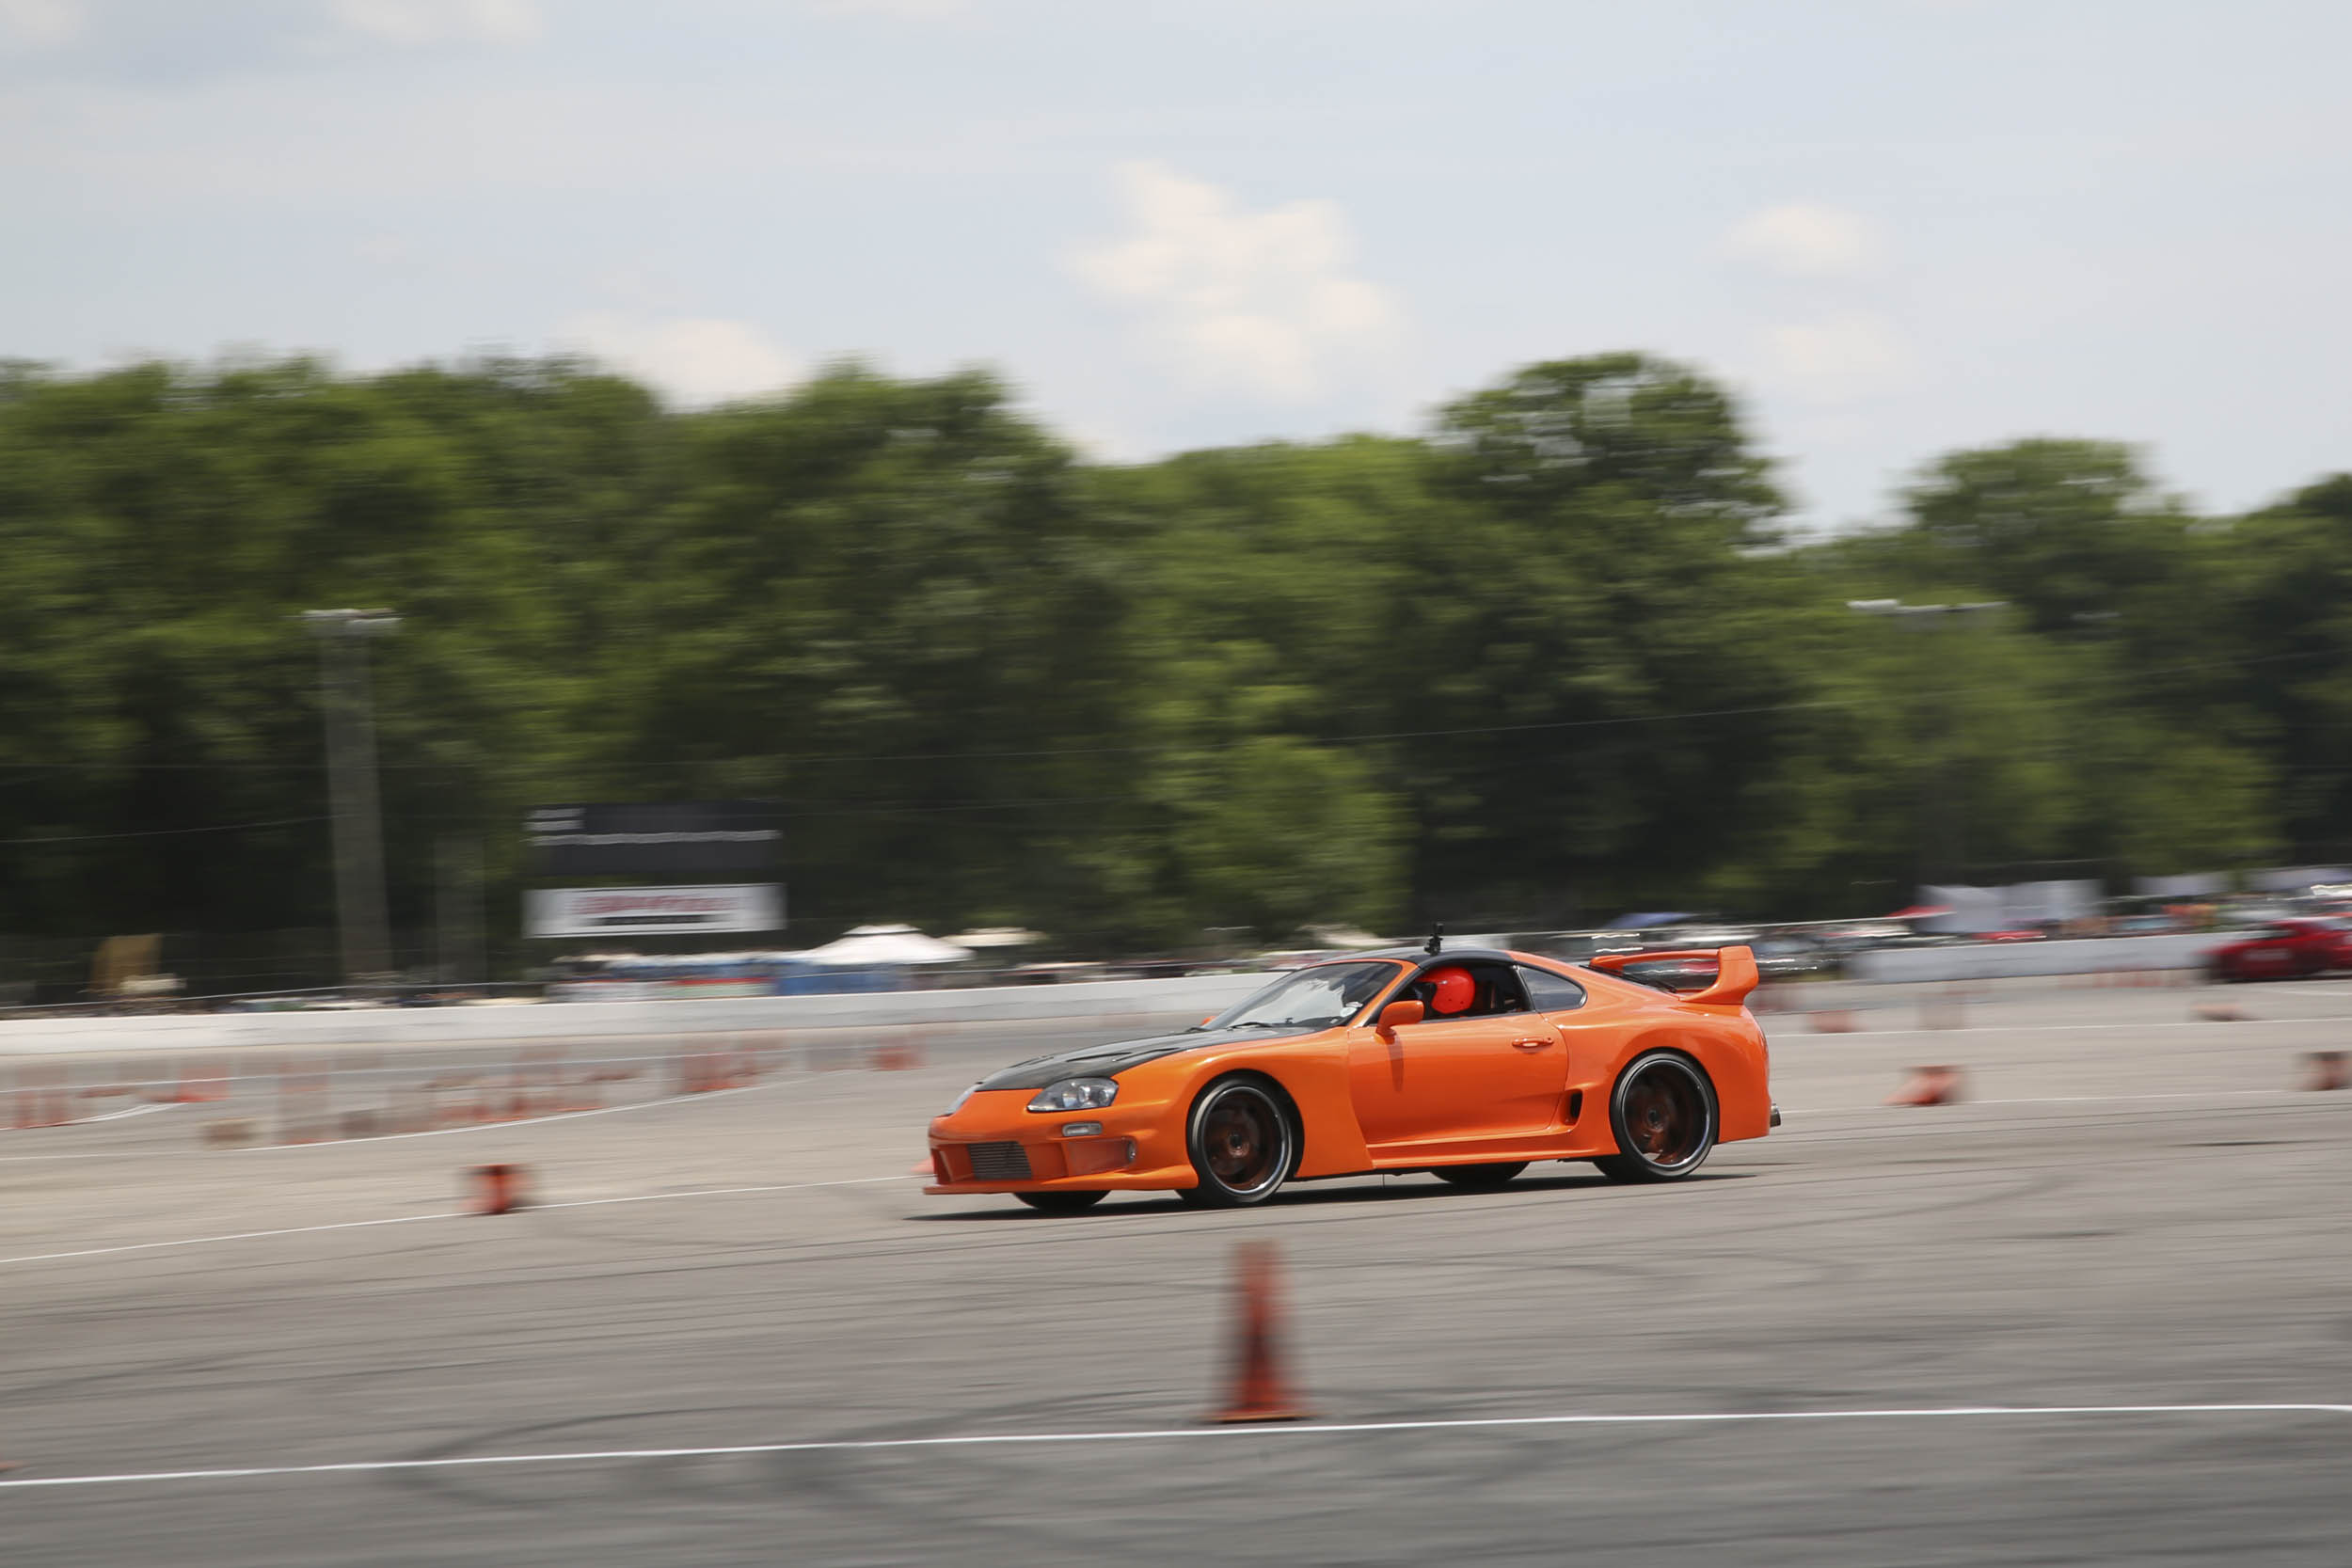 Power Tour organizers like to pick venues that offer participants something to do with their cars, so at least a couple of the venues will include an autocross course or a dragstrip. Beech Bend, in Bowling Green, Kentucky, had both.